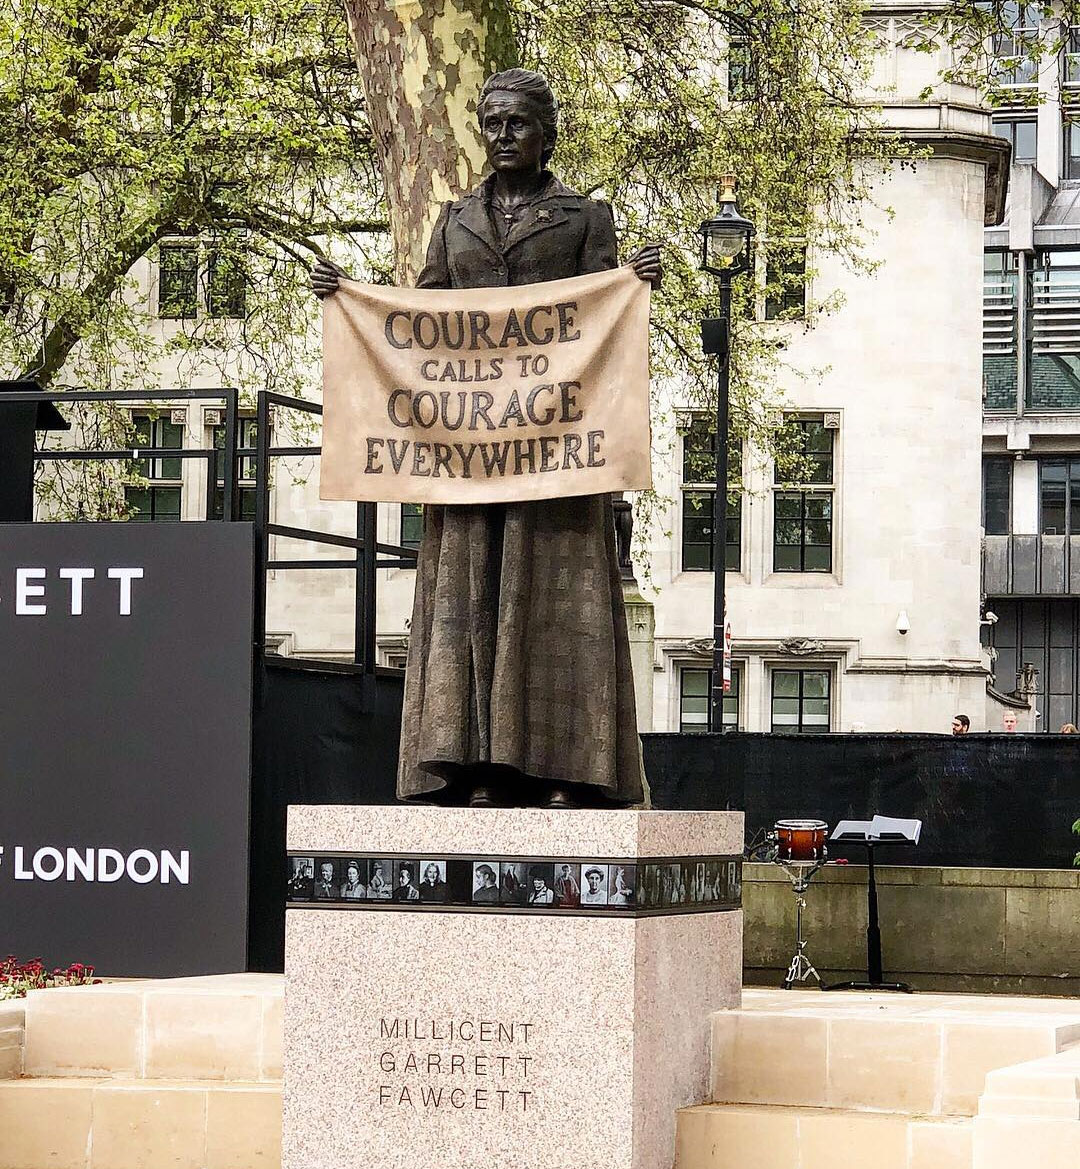 Gillian Wearing's statue of Millicent Fawcett, as unveiled in Parliament Square today. Image courtesy of the Mayor of London's Instagram